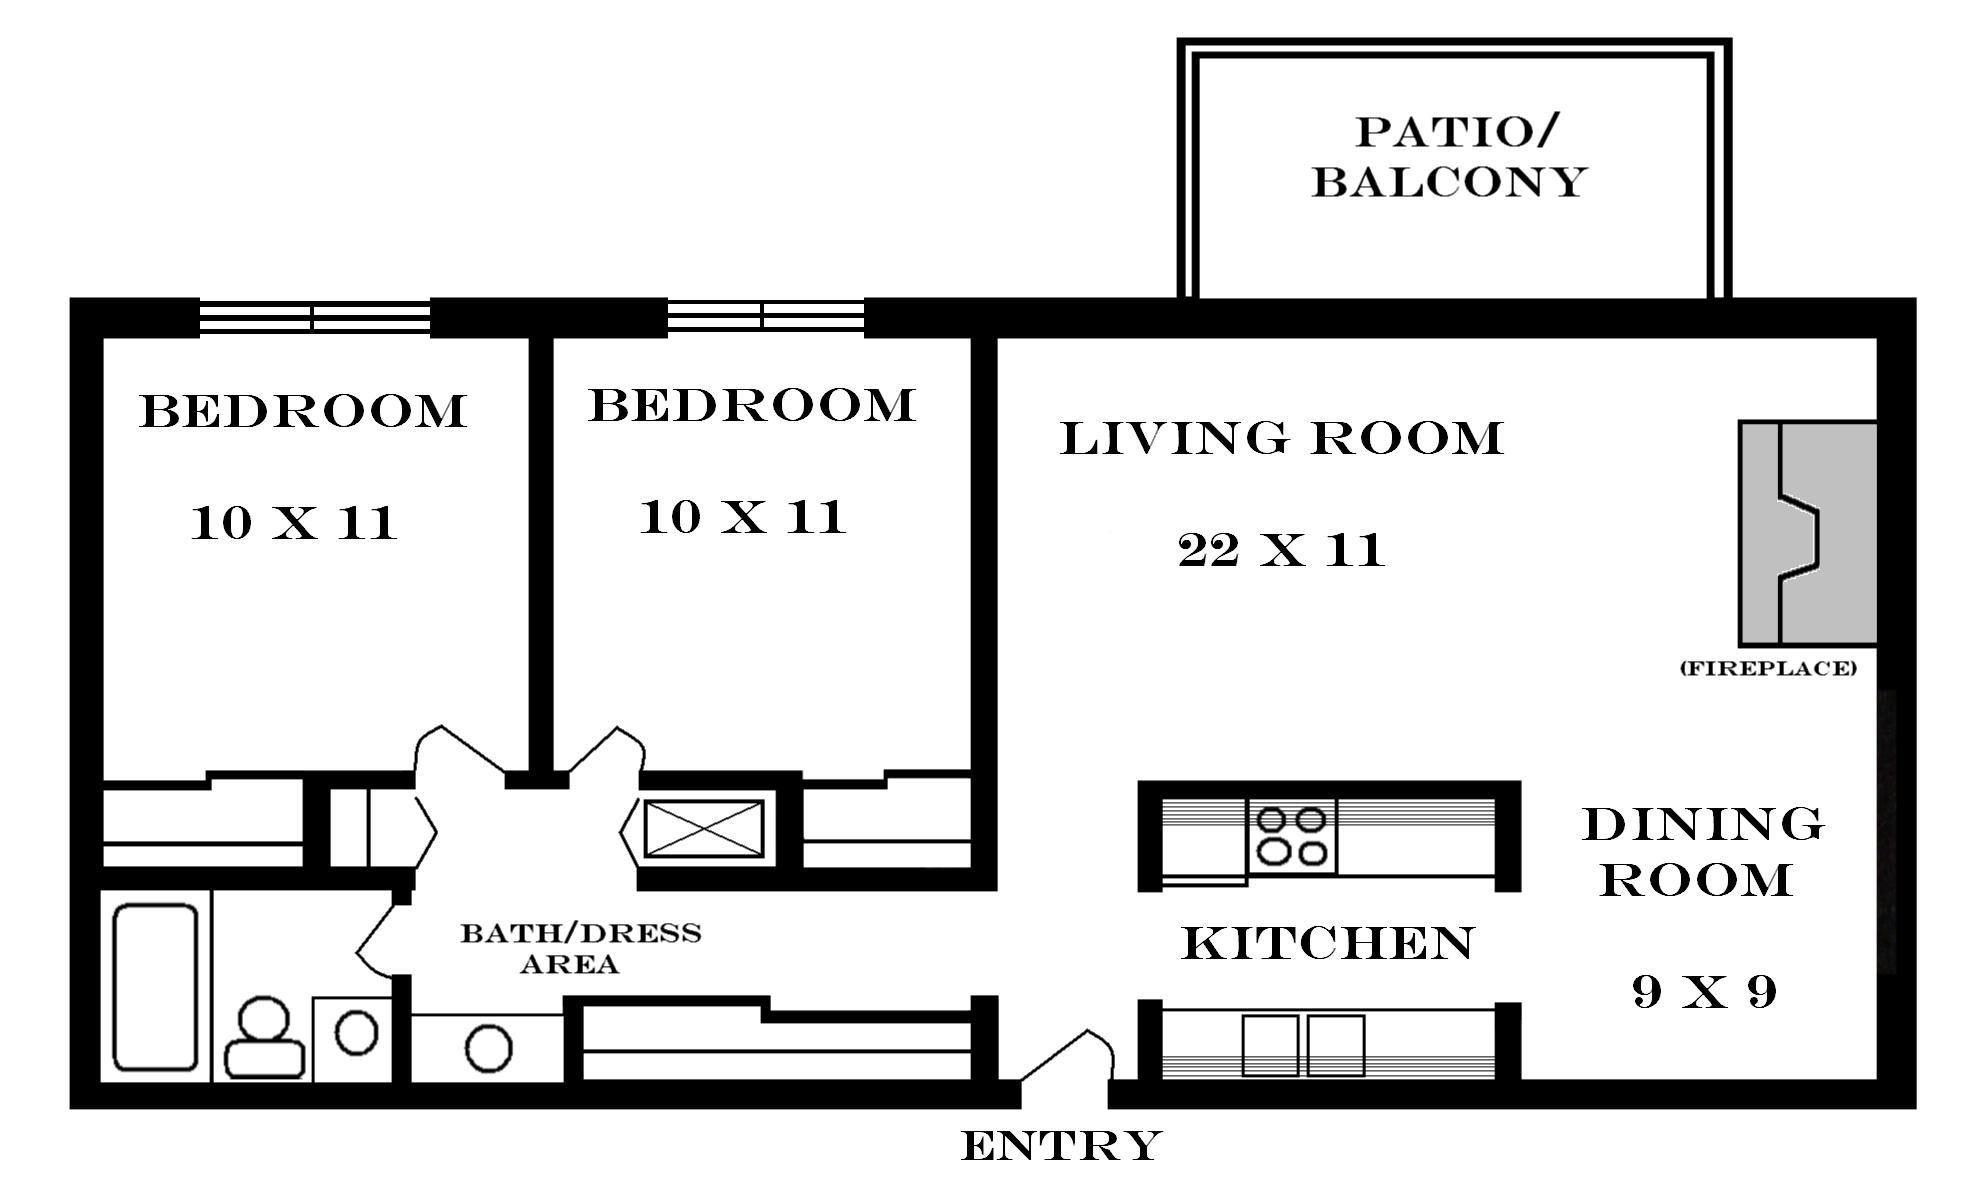 Small house floor plans 2 bedrooms 900 tiny houses for House plans for apartments